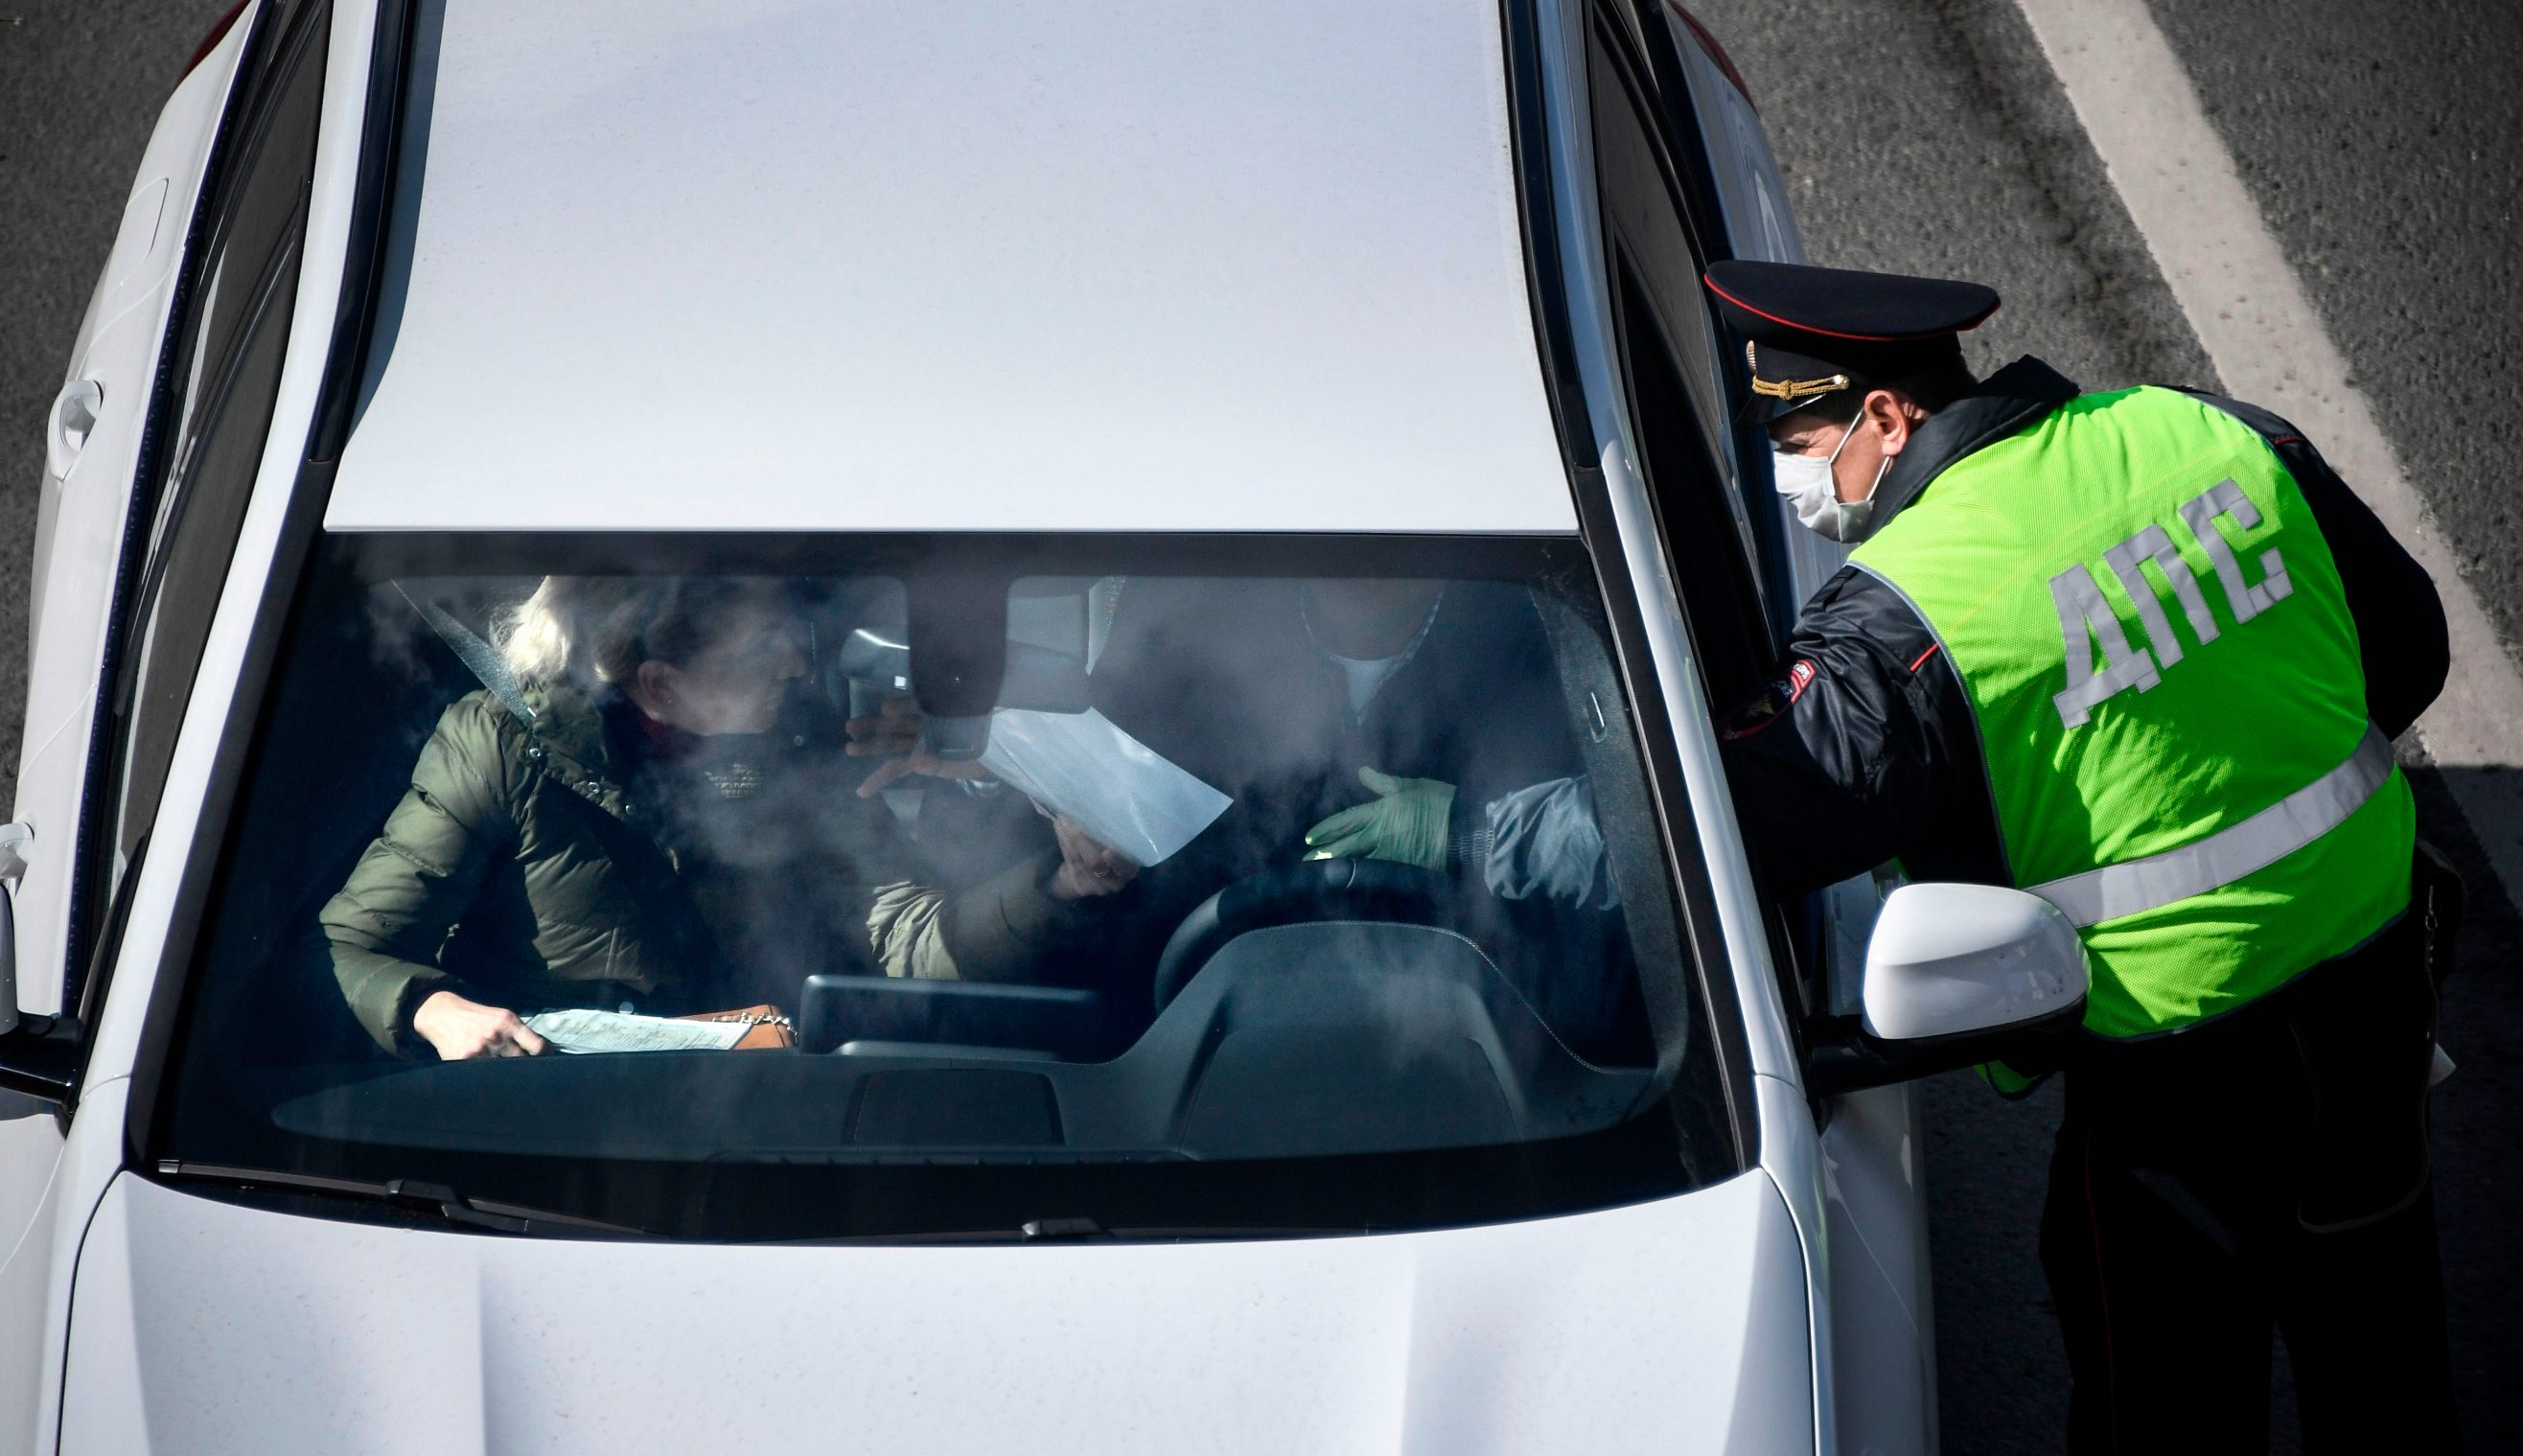 Traffic police check IDs and passes of drivers and passengers in cars entering Moscow after the city authorities introduced a mandatory permit system for people travelling across the city by car or public transport in a bid to stop the spread of the COVID-19 coronavirus, at a checkpoint on the outskirts of Moscow on April 15, 2020. (Photo by Alexander NEMENOV / AFP)